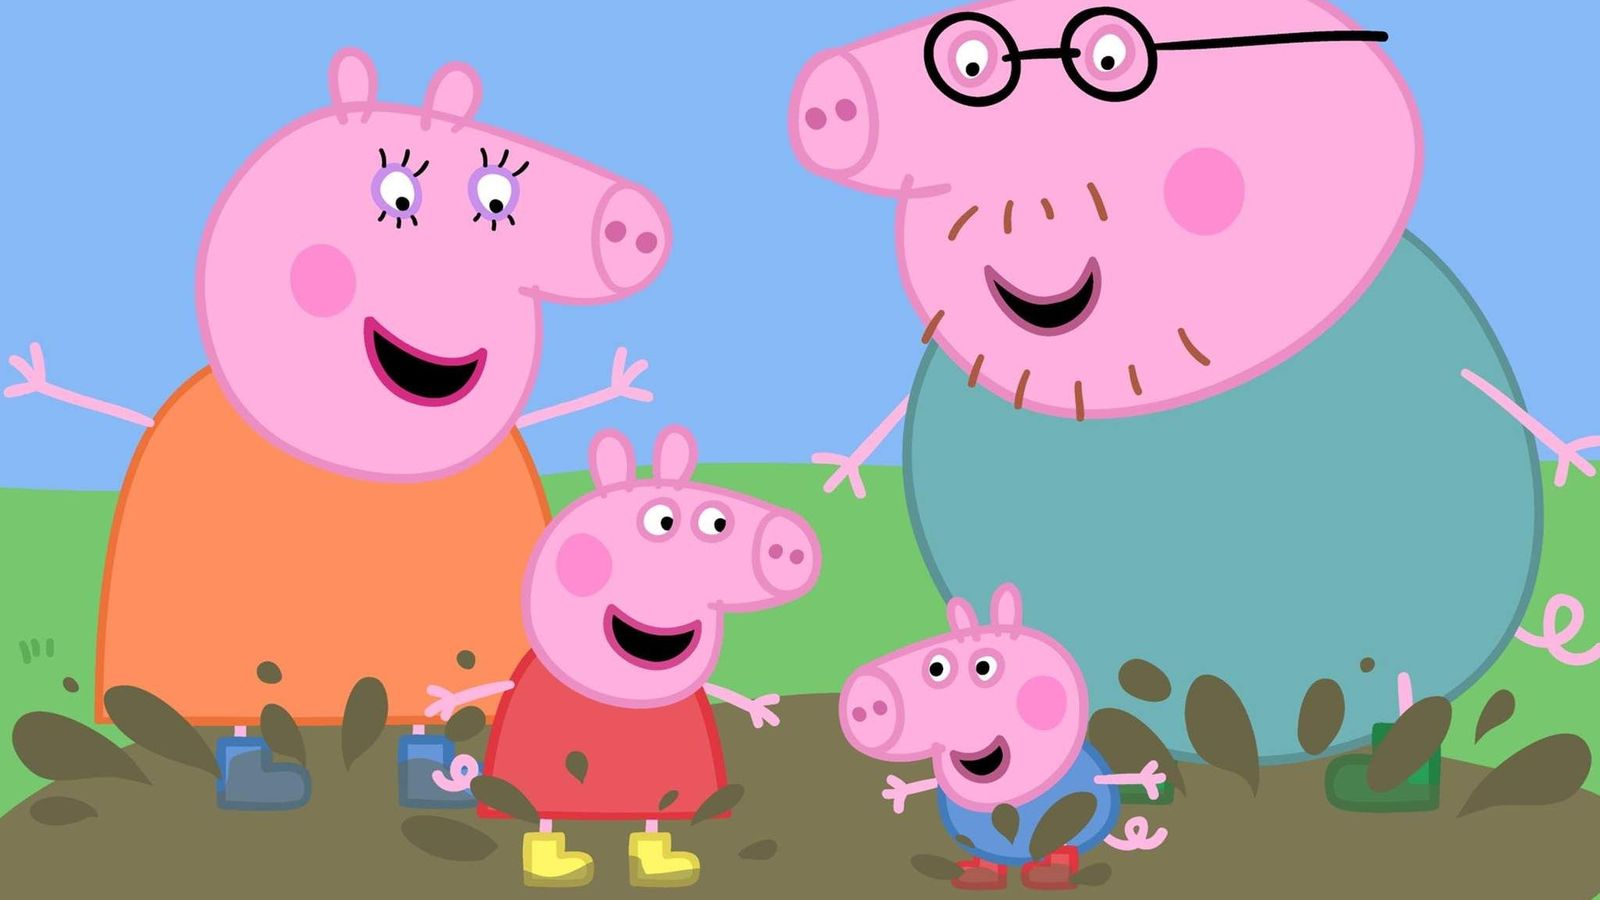 Subversive Peppa Pig Faces Chinese Web Crackdown Science